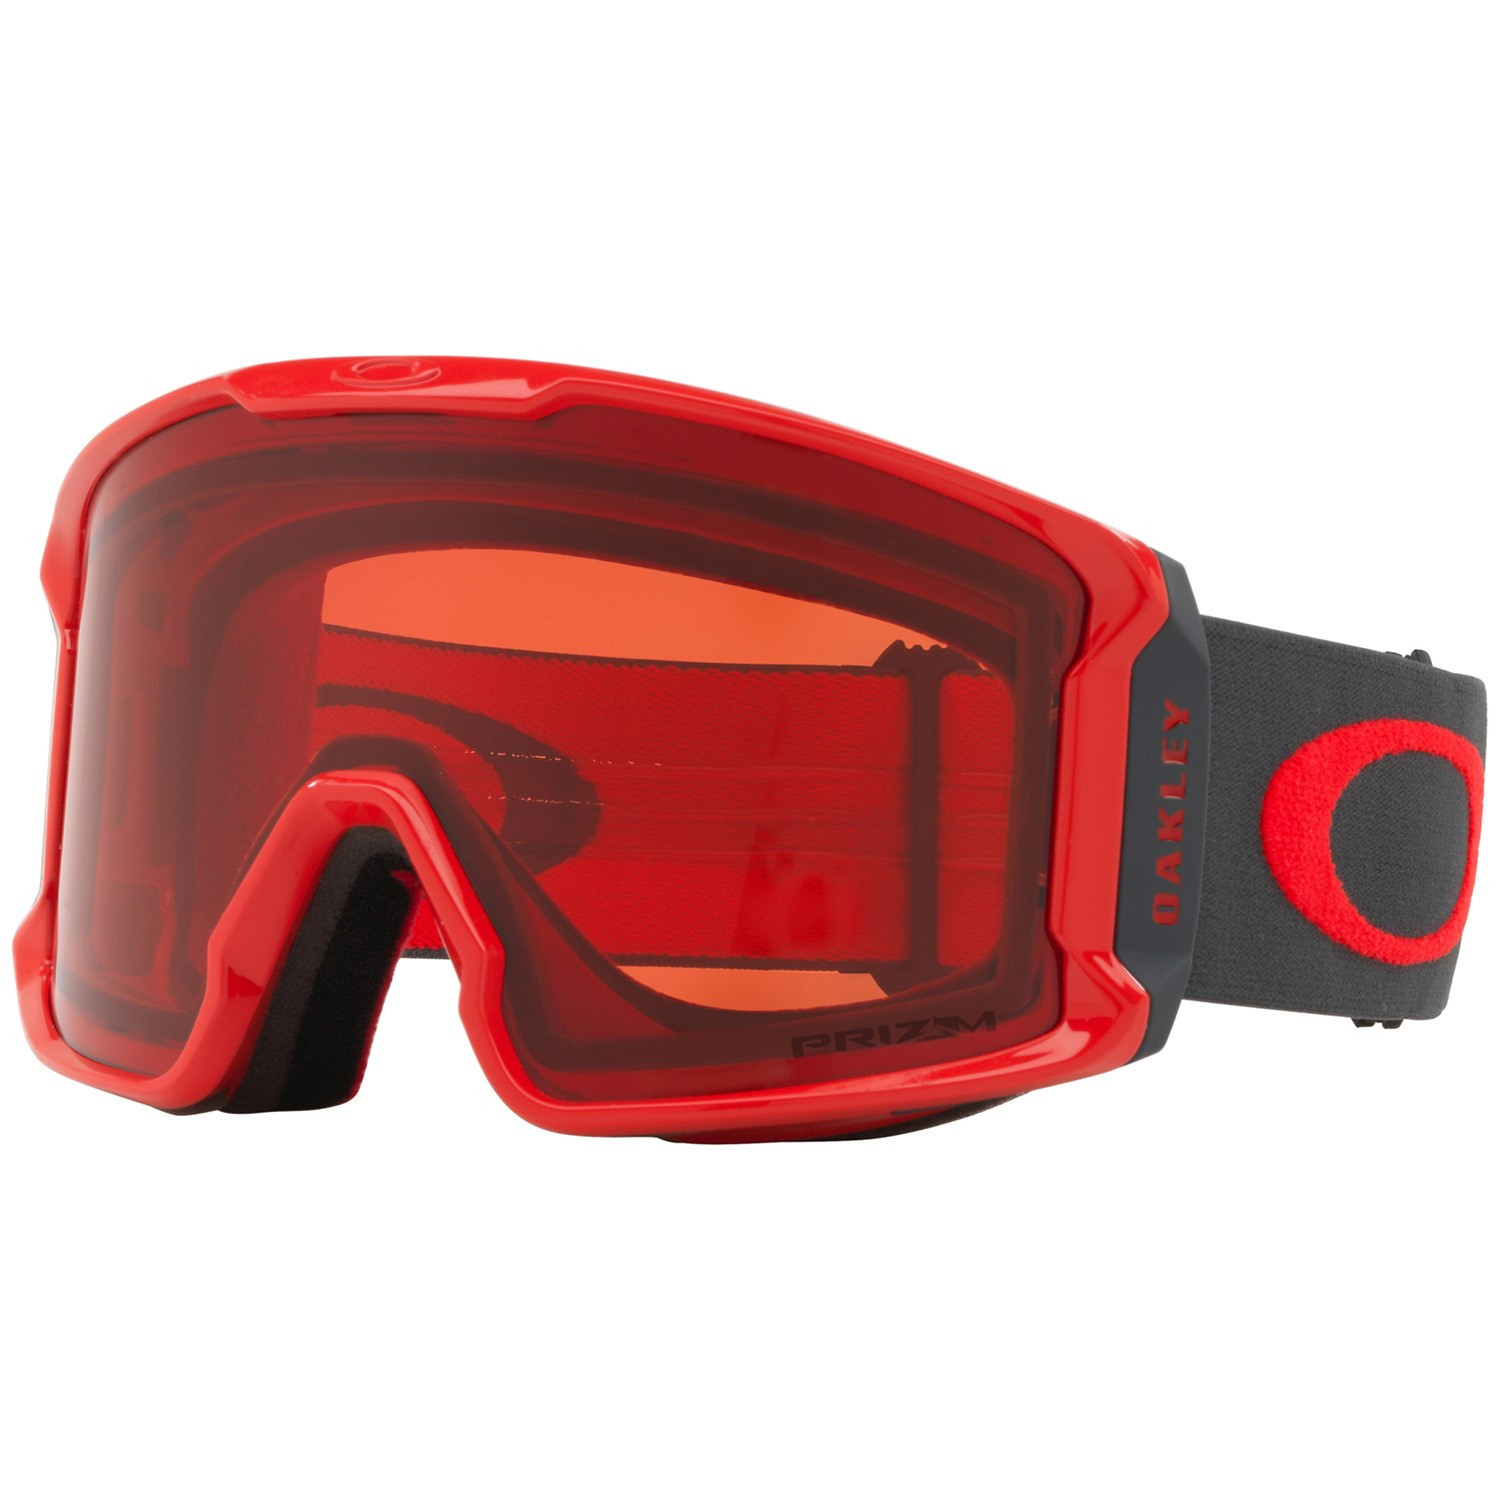 Oakley Line Miner Snowboard Goggles Red Forged Iron Prizm Rose